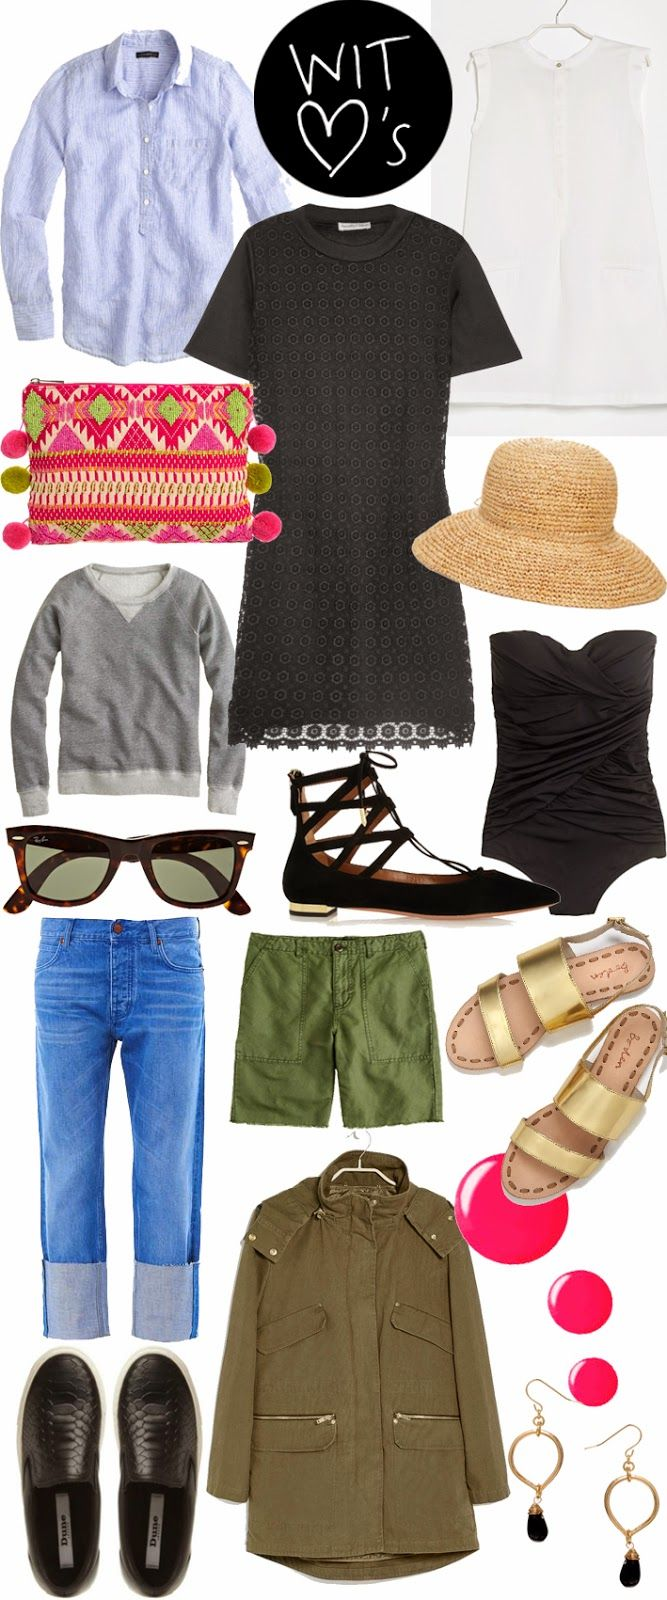 What to pack for a long week end at the UK sea sude